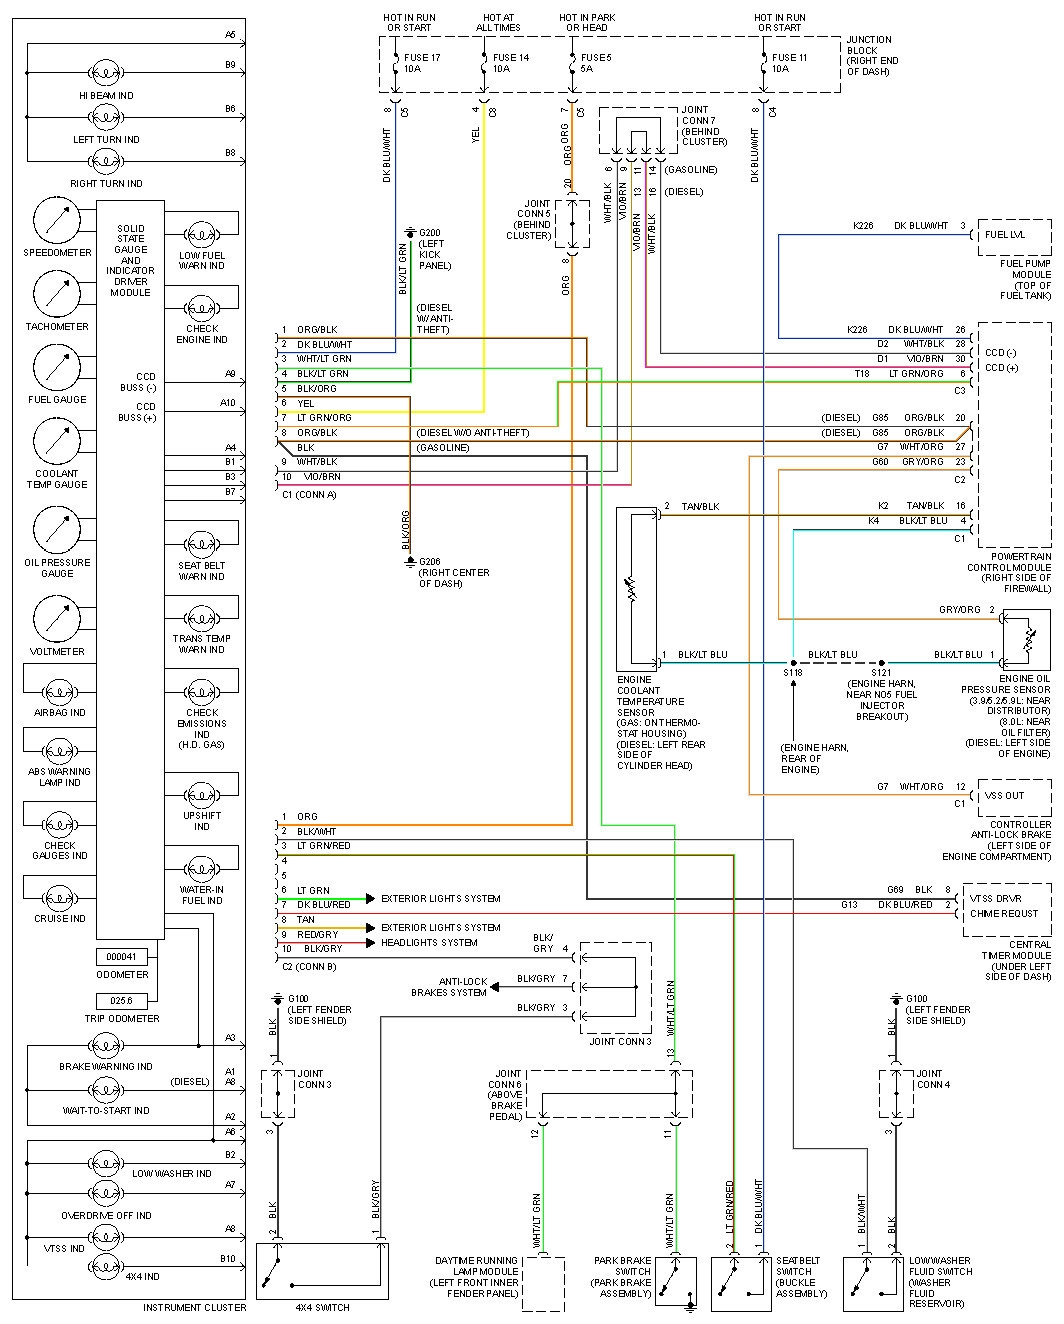 1997 Dodge Ram 1500 Wiring Harness Diagram - Wiring Diagram 500 on a transmission diagram, a motor diagram, a roofing diagram, a regulator diagram, a radiator diagram, a body diagram, a fuse diagram, a relay diagram,